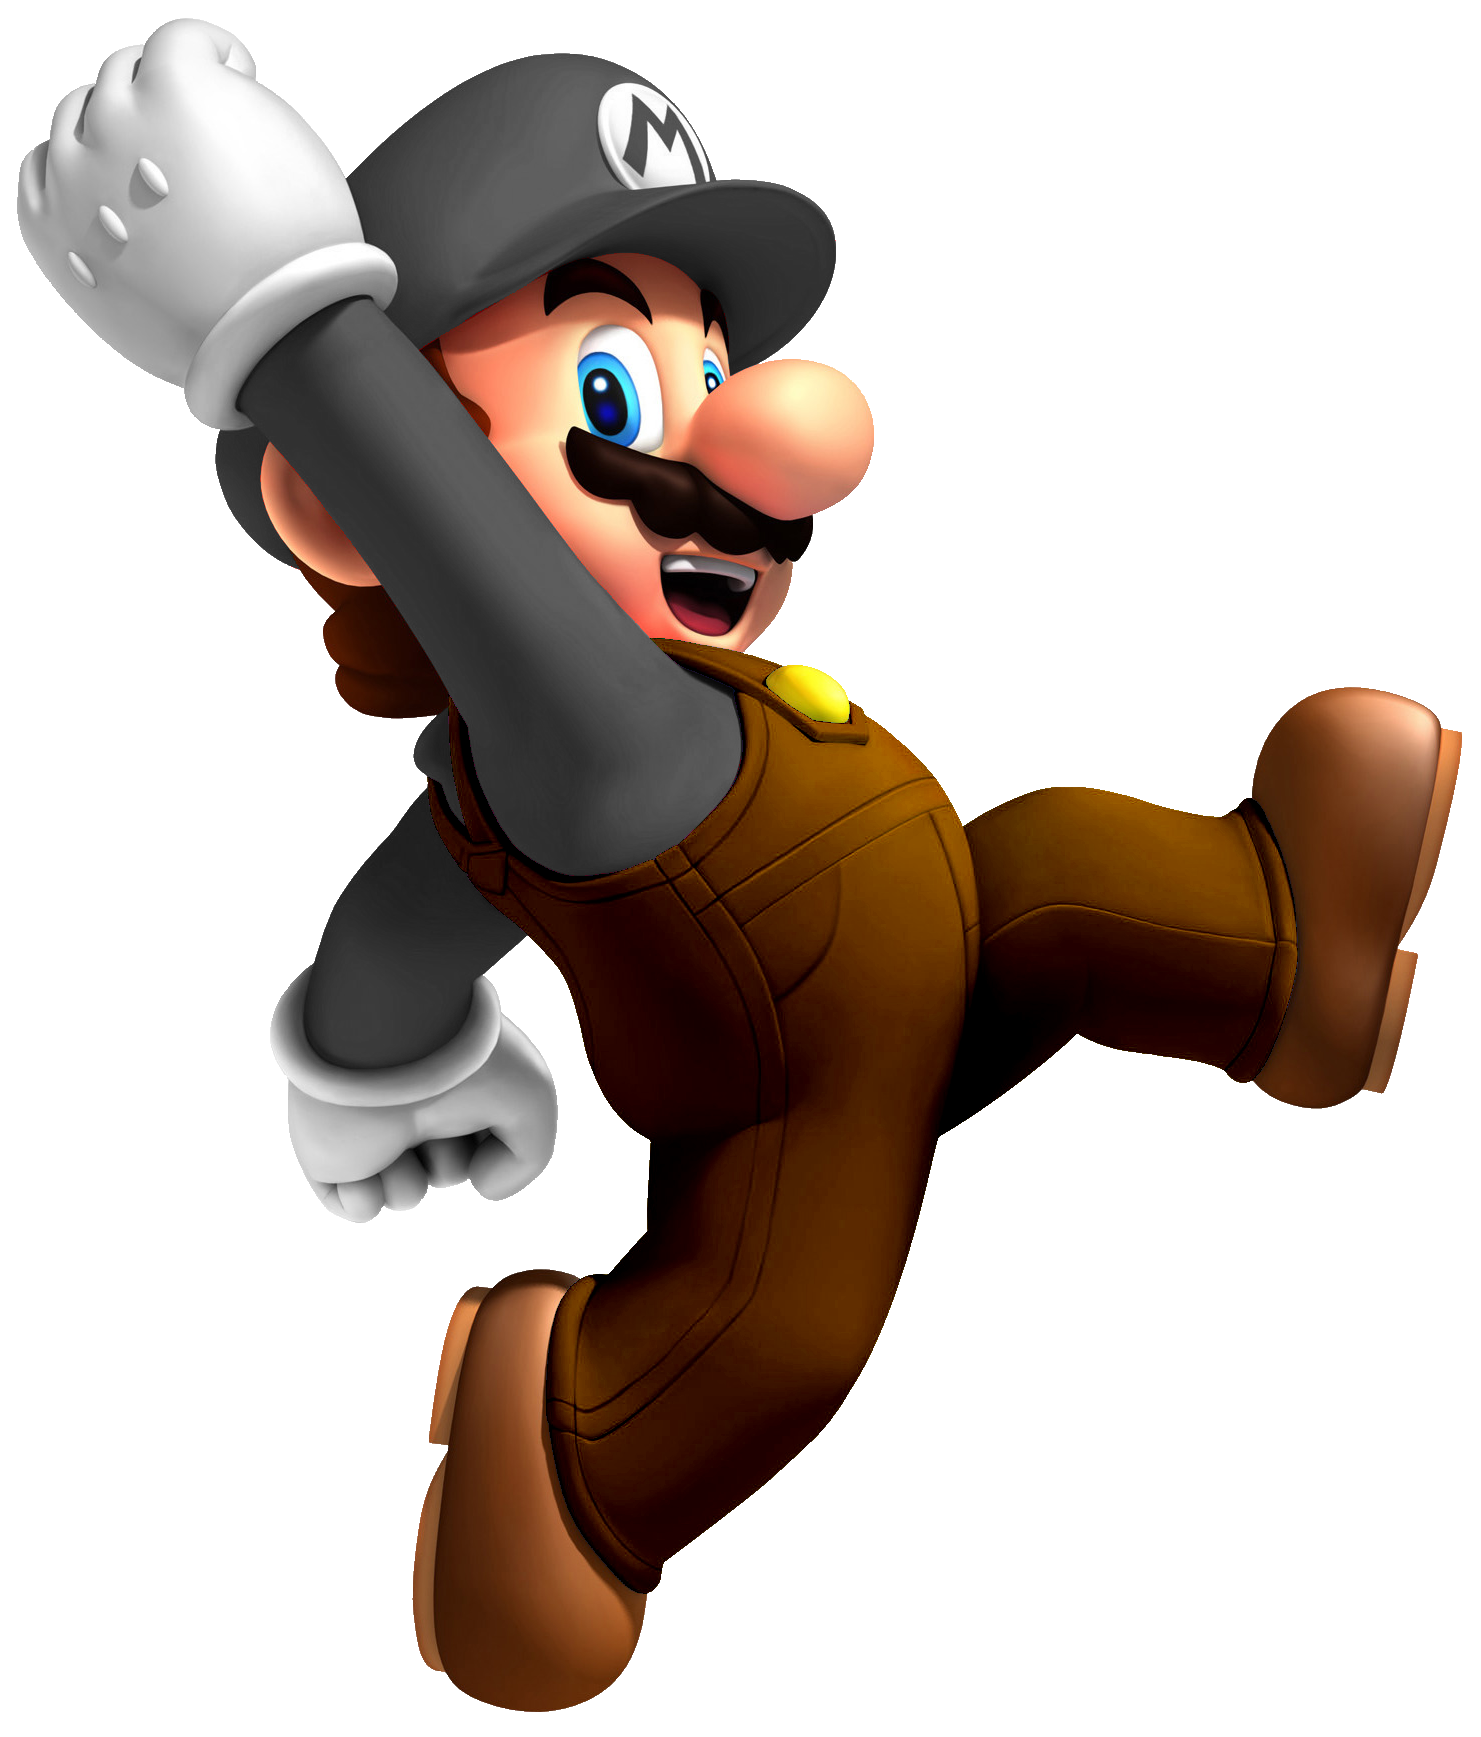 Earthquake clipart issue global. Mario png images free